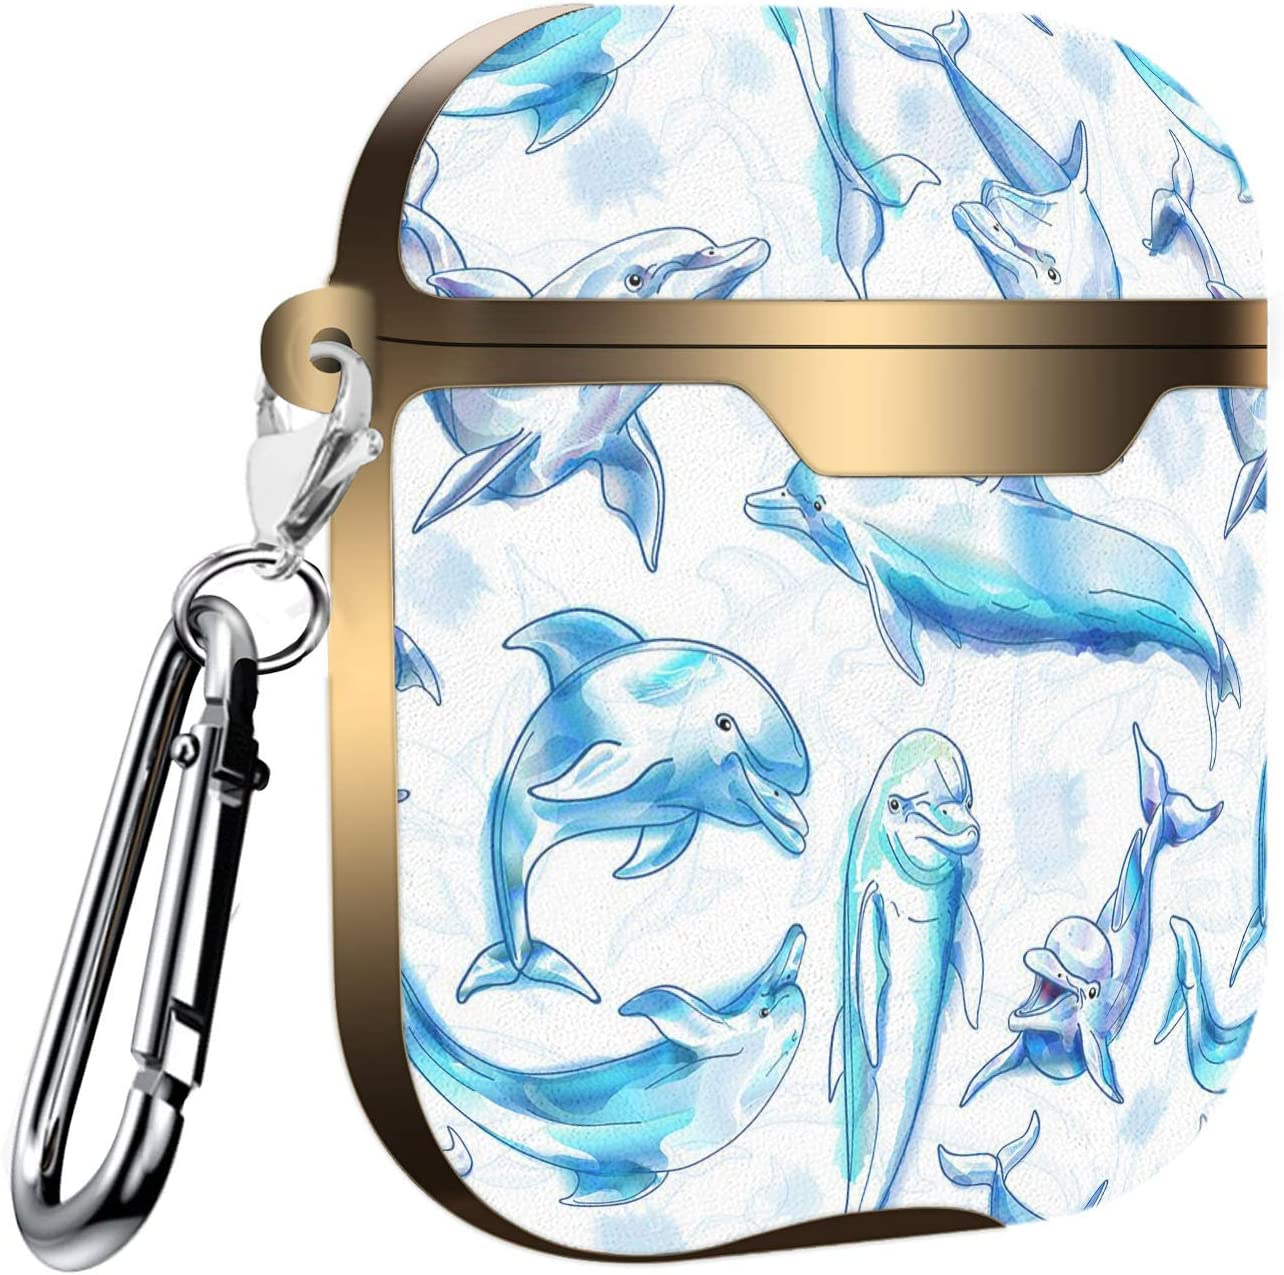 Watercolor Dolphin Pattern Slim Form Fitted Printing Pattern Cover Case with Carabiner Compatible with Airpods 1 and AirPods 2